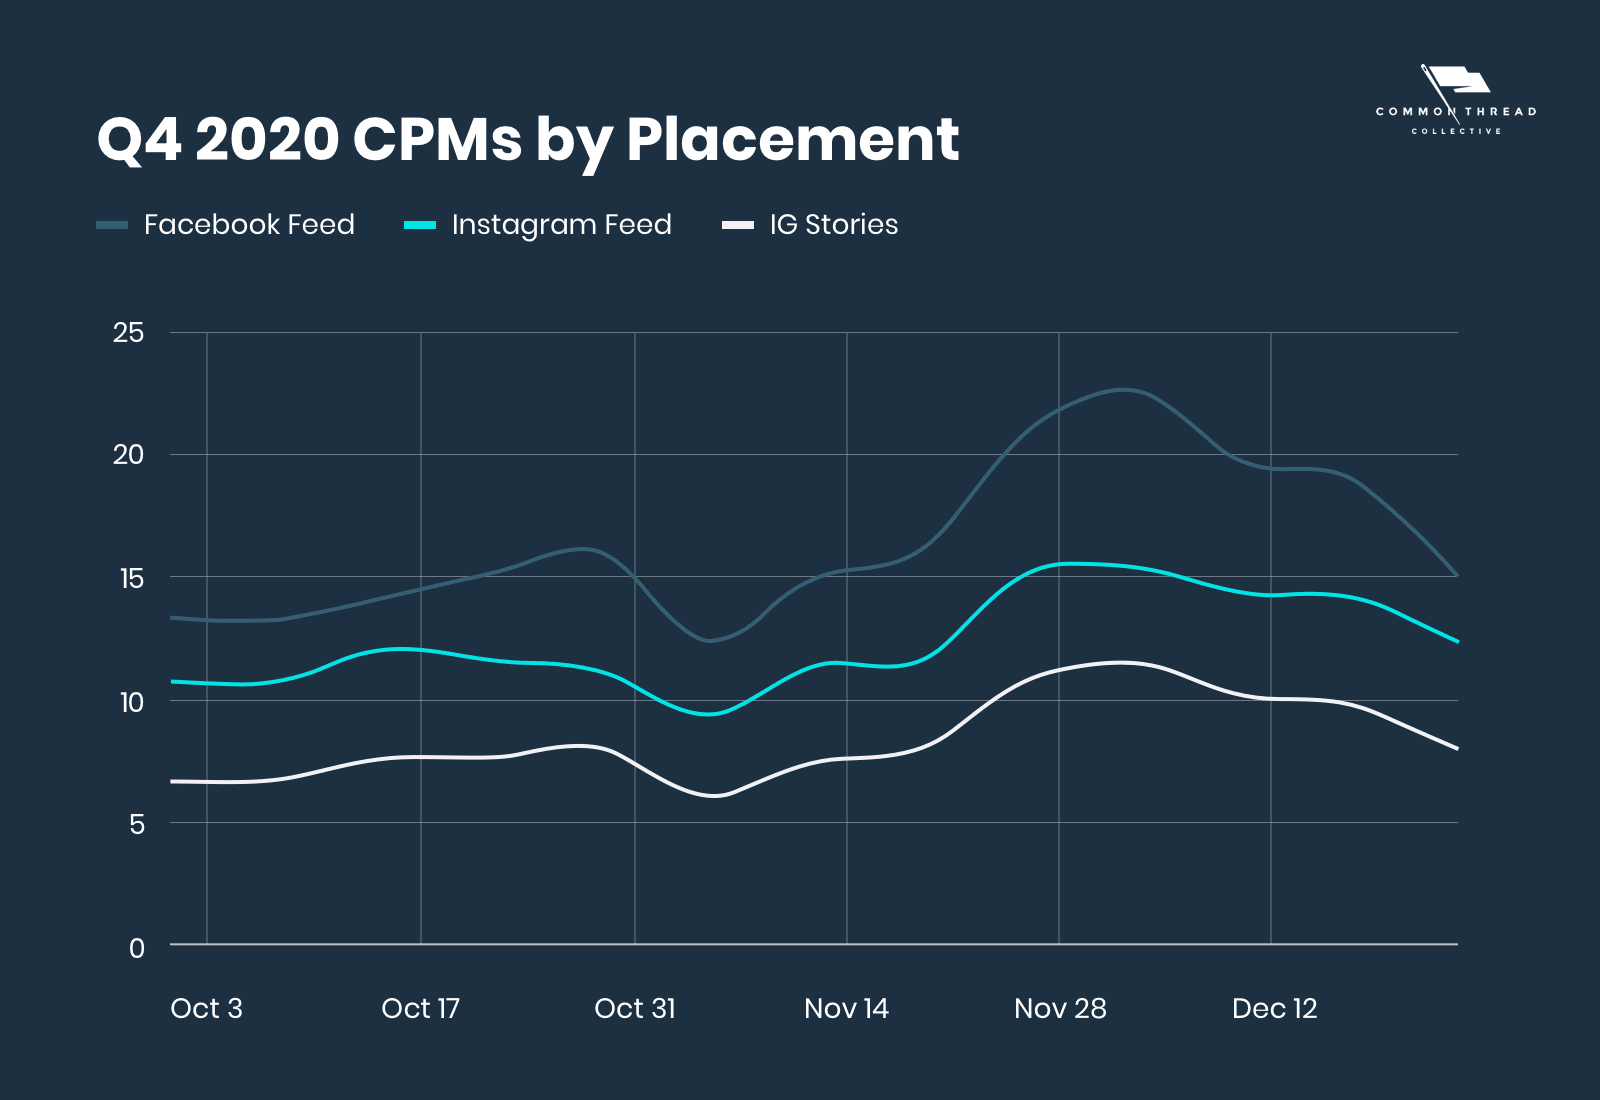 Q4 2020 CPMs by Placement